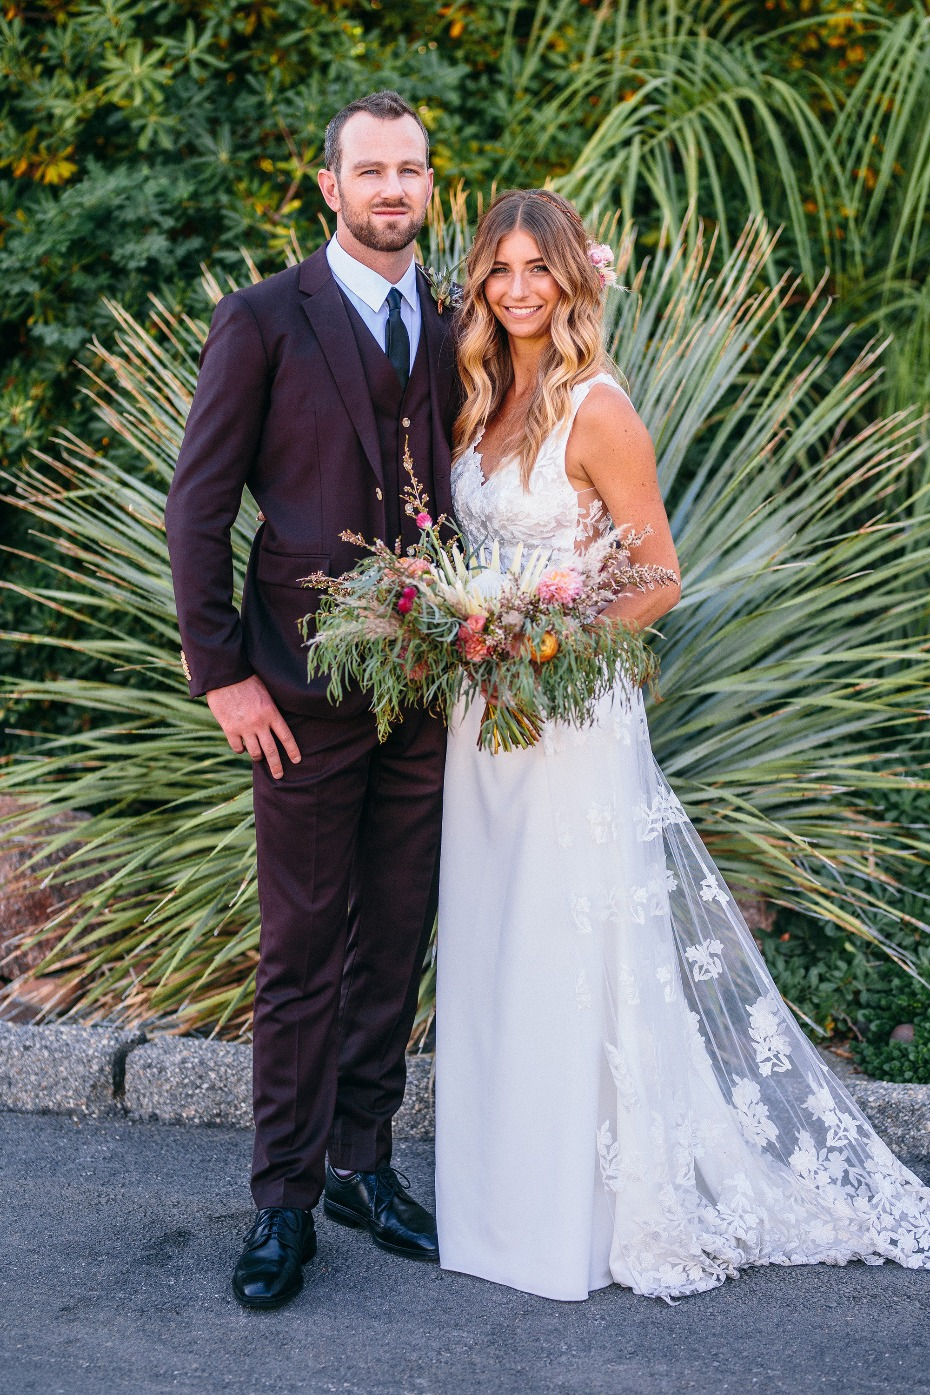 Stylish Palm Springs wedding